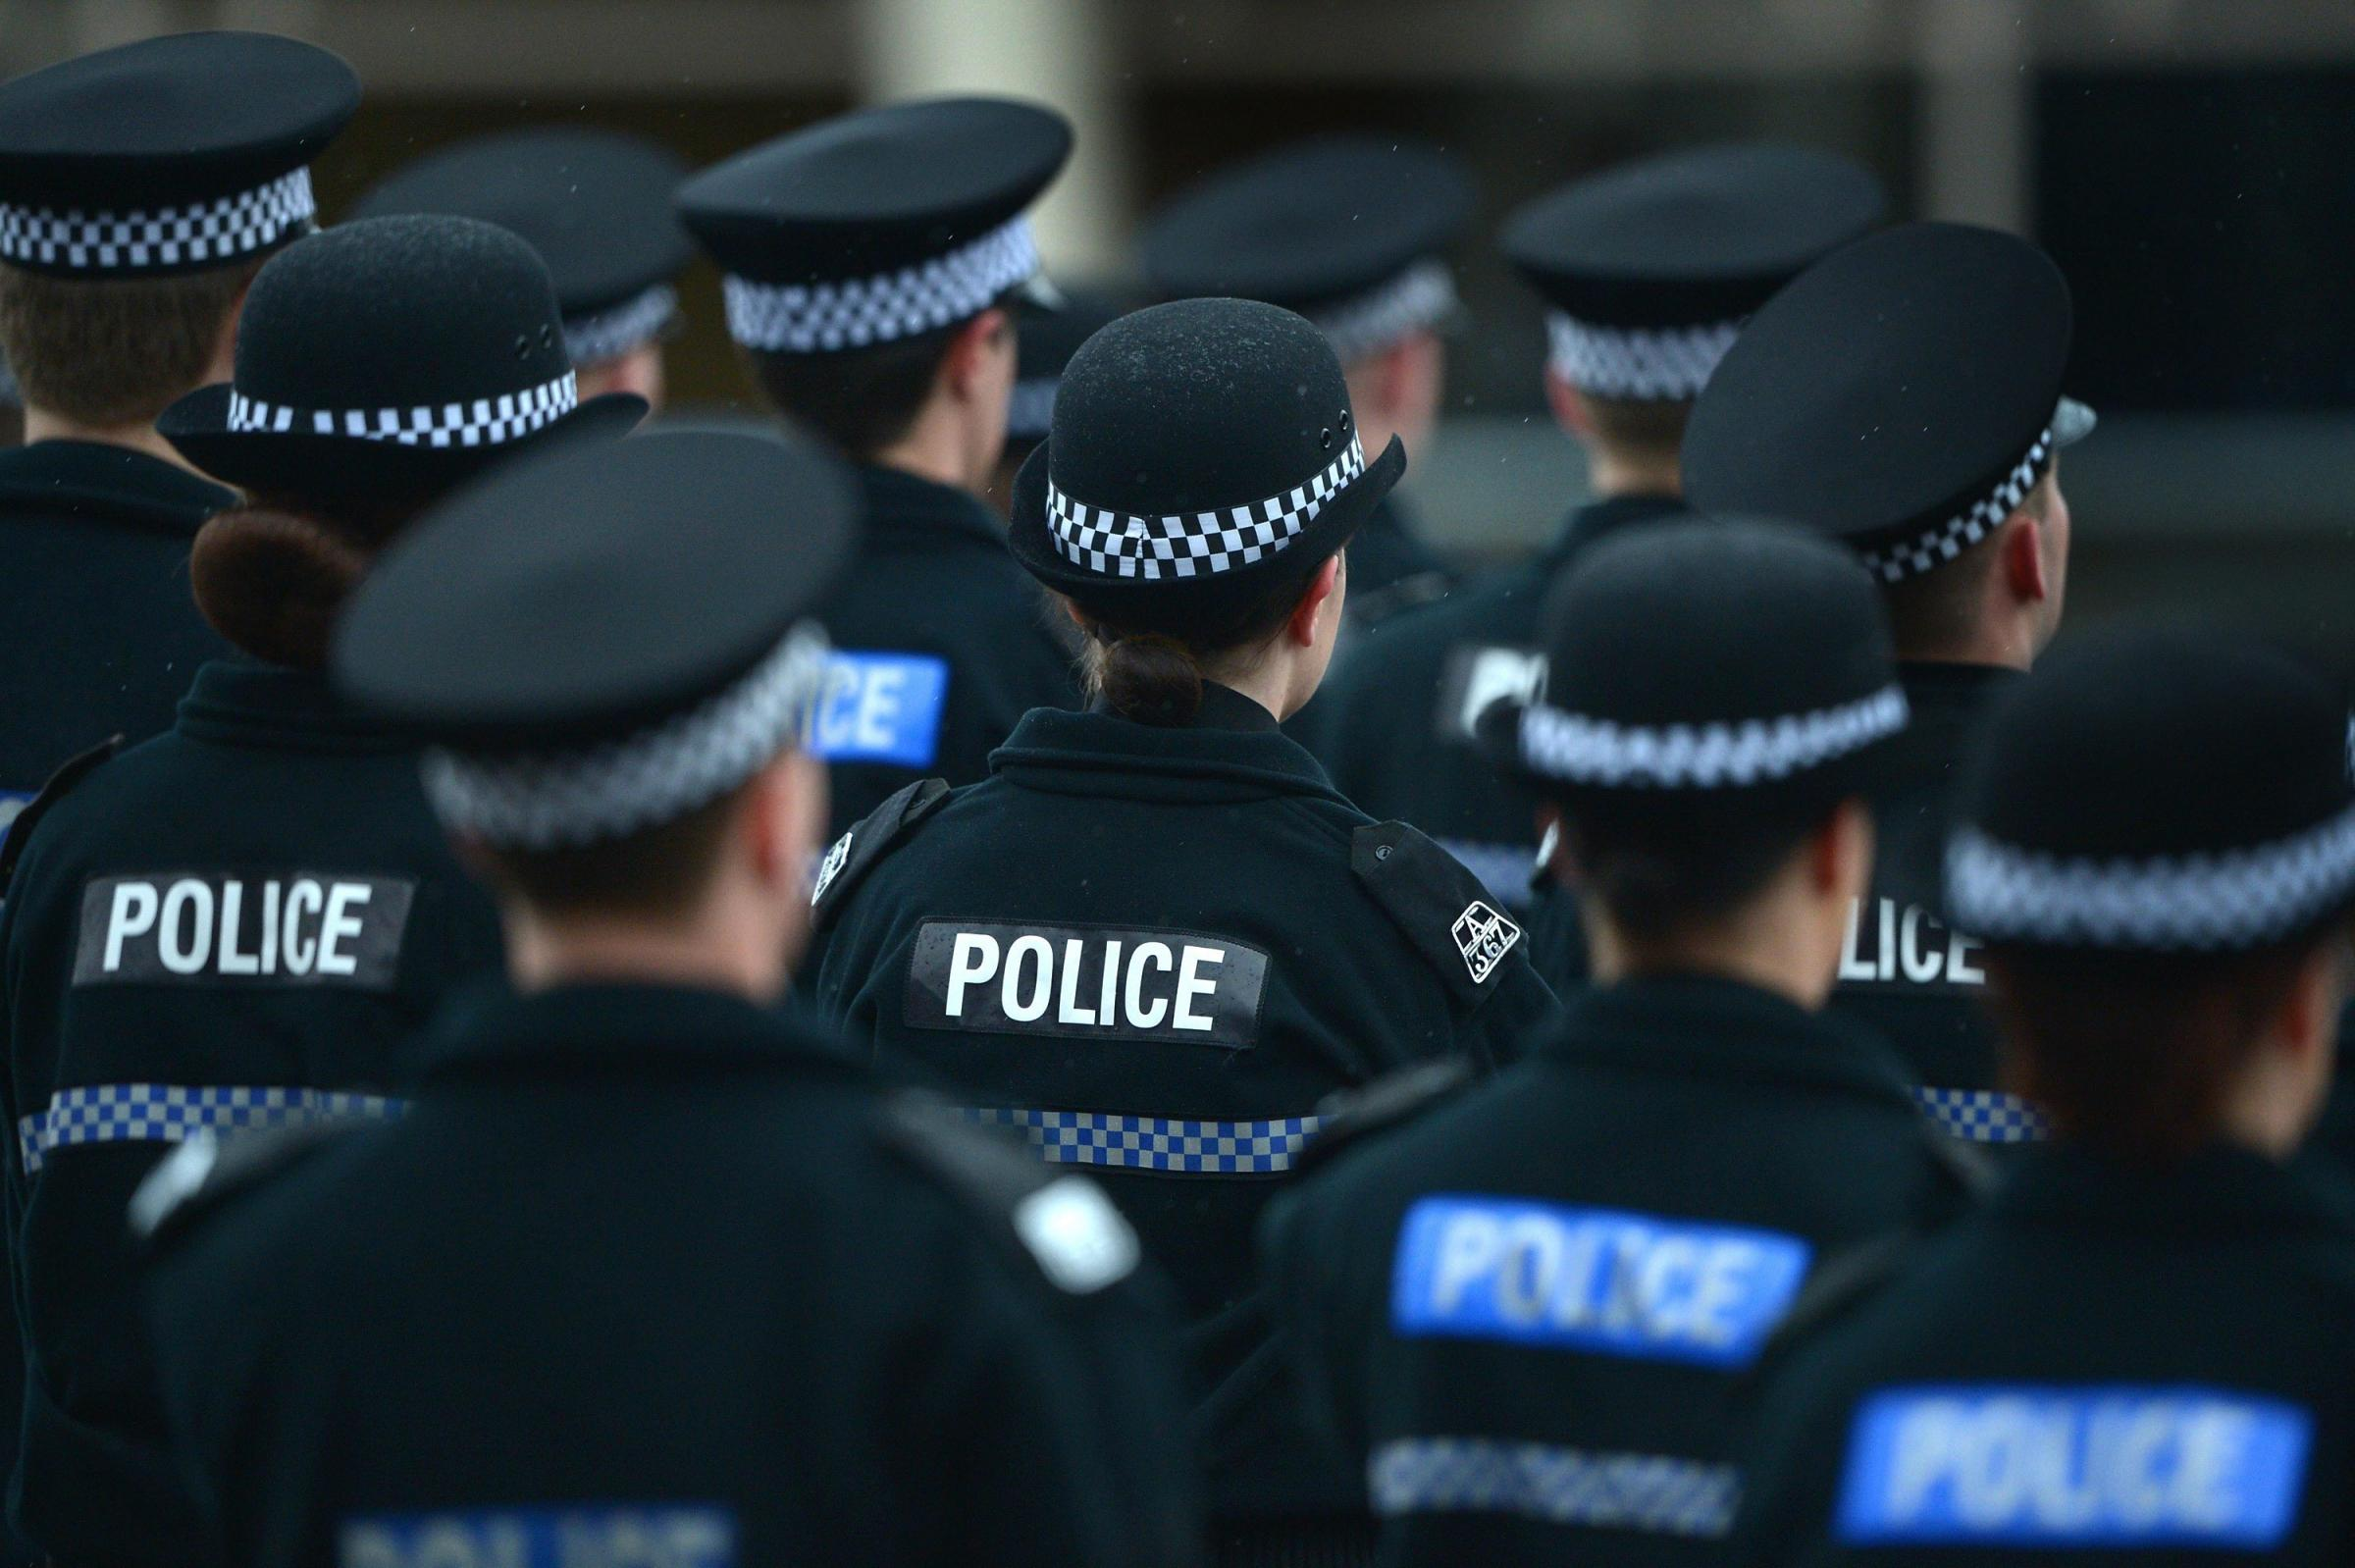 Police in rural areas could be armed under new proposals.